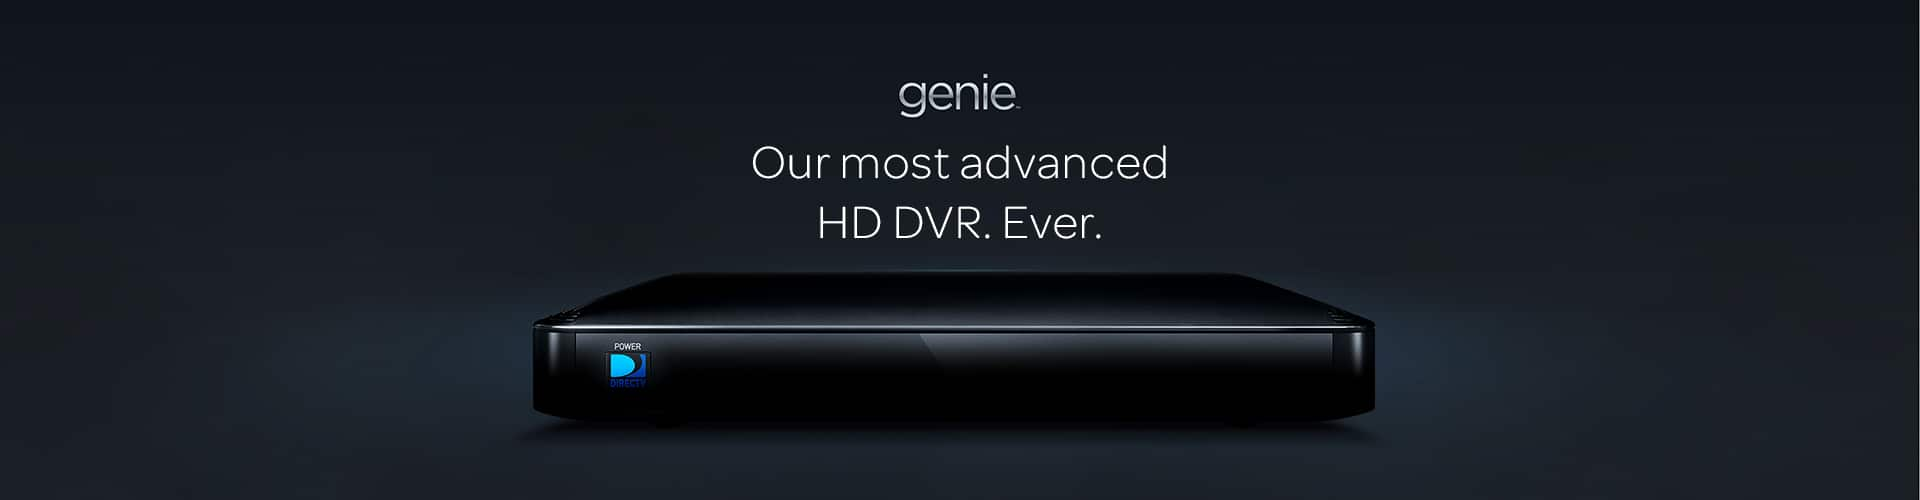 directv genie hd dvr our most advanced dvr ever rh att com DirecTV HD DVR Wireless directv plus hd dvr user guide